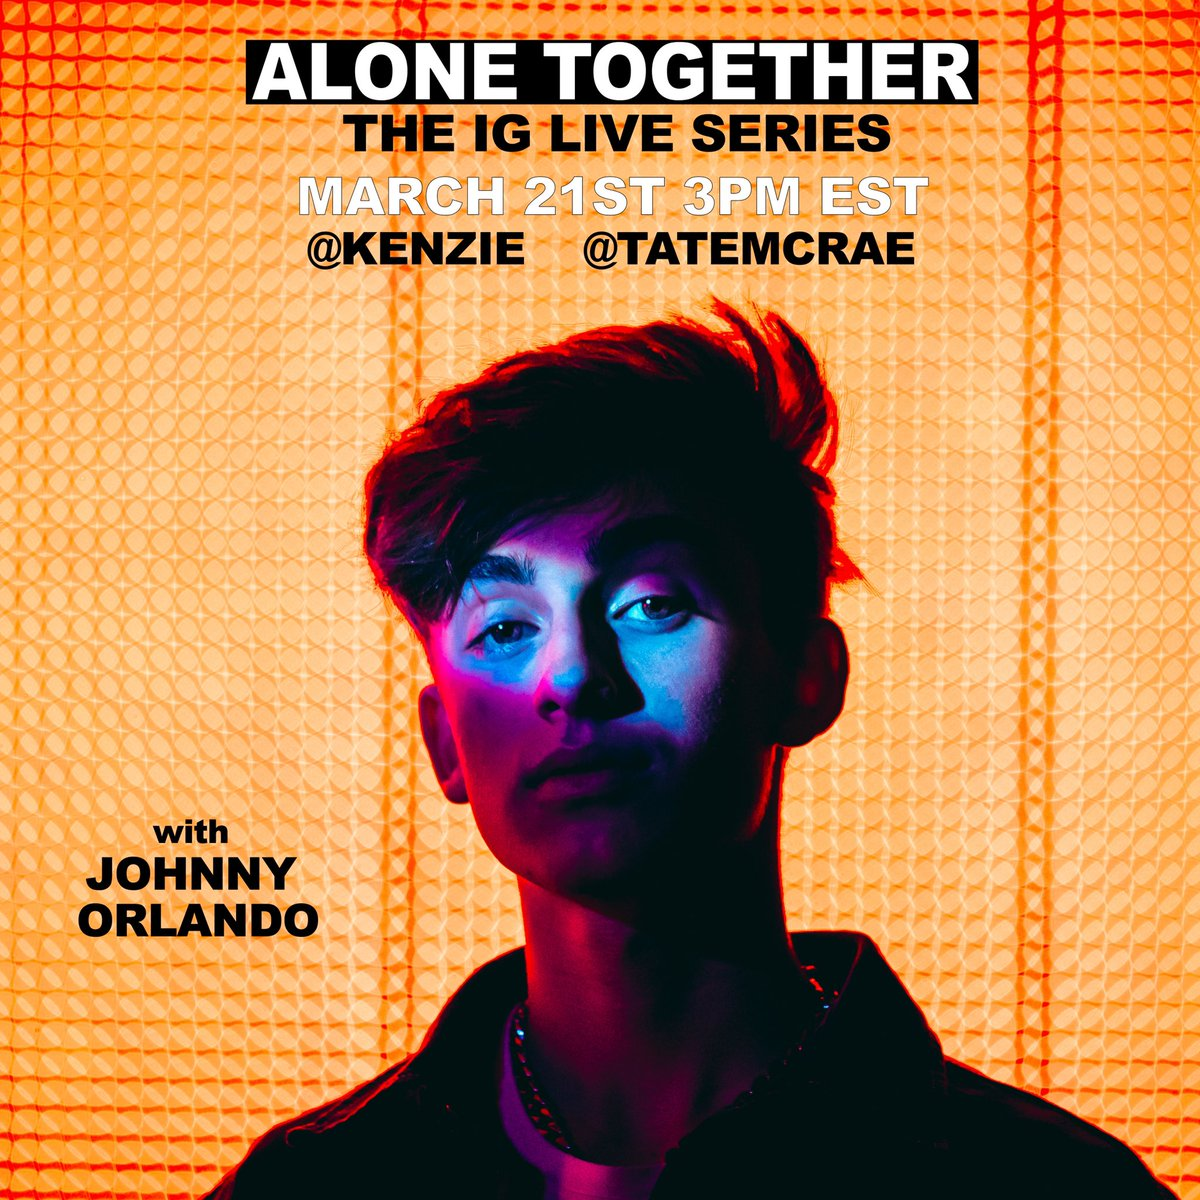 today on ig live with @kenzie & @tatemcrae at 3pm est! #AloneTogether 🥳